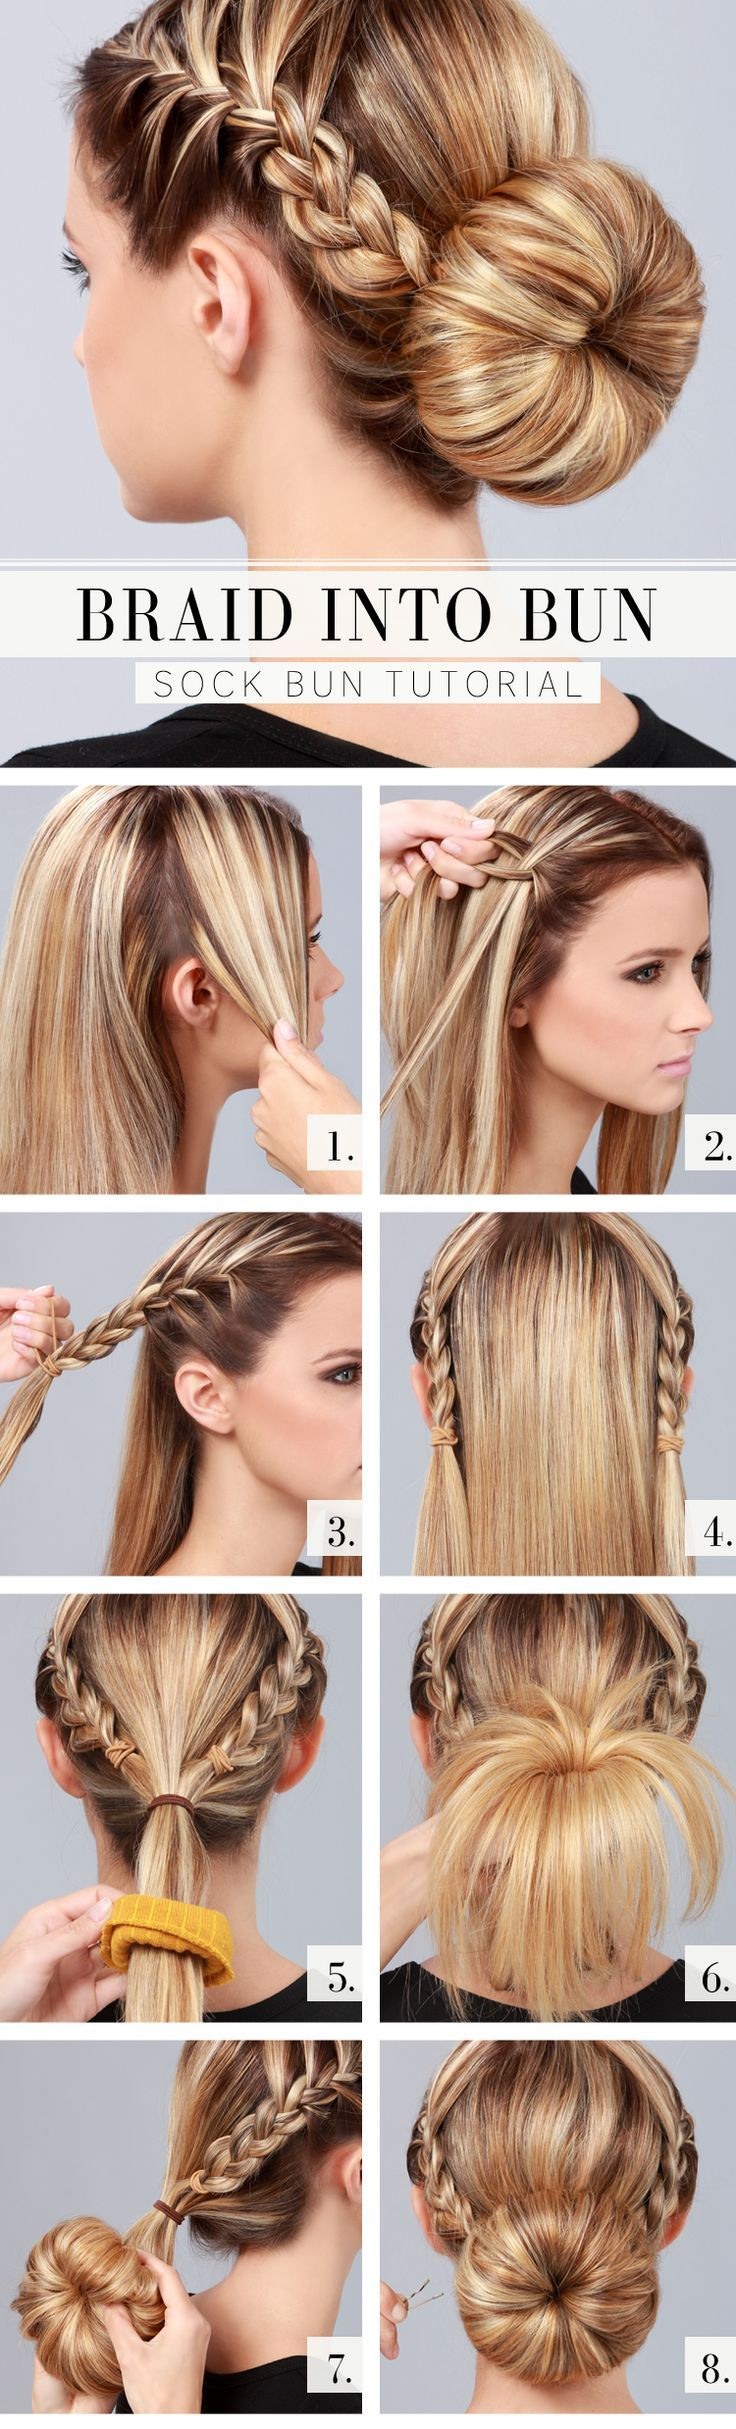 best idées coiffure images on pinterest hairstyle ideas hair